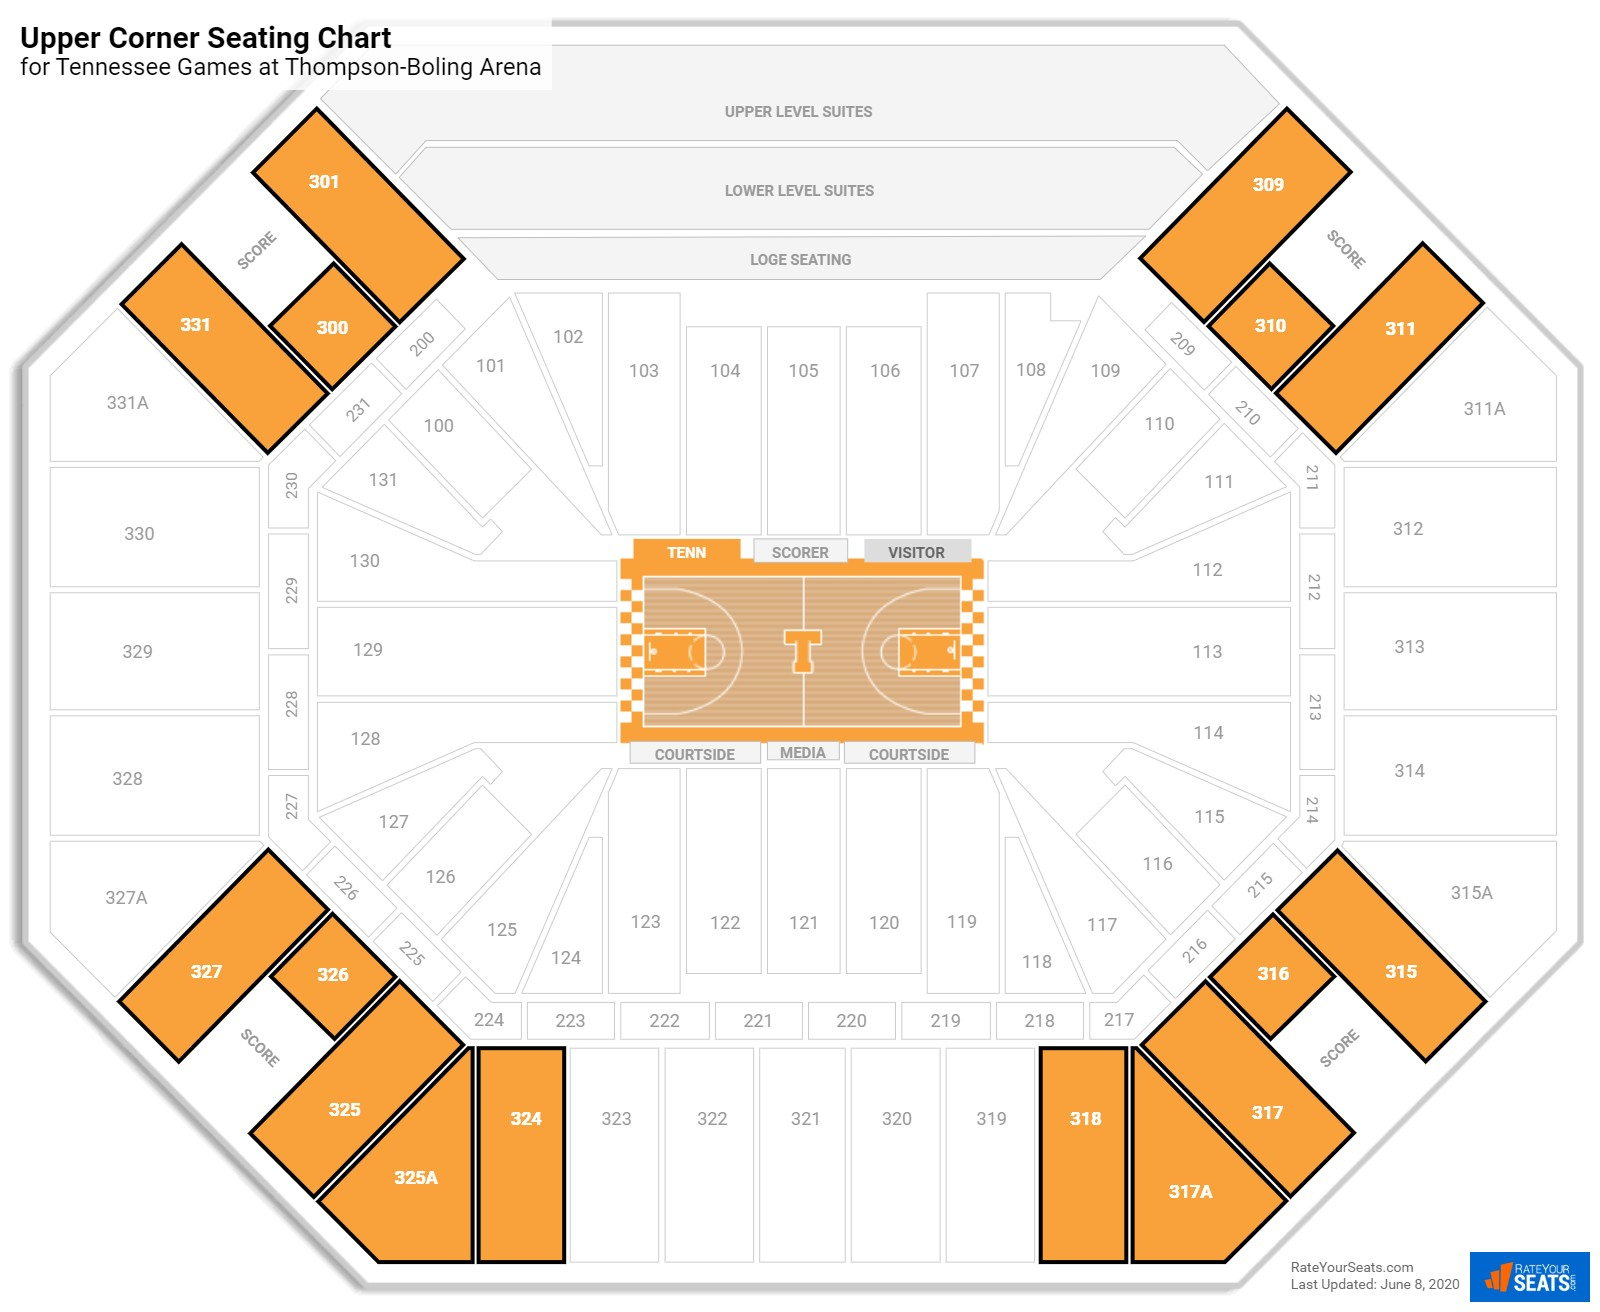 Thompson Boling Arena Upper Corner Seating Chart